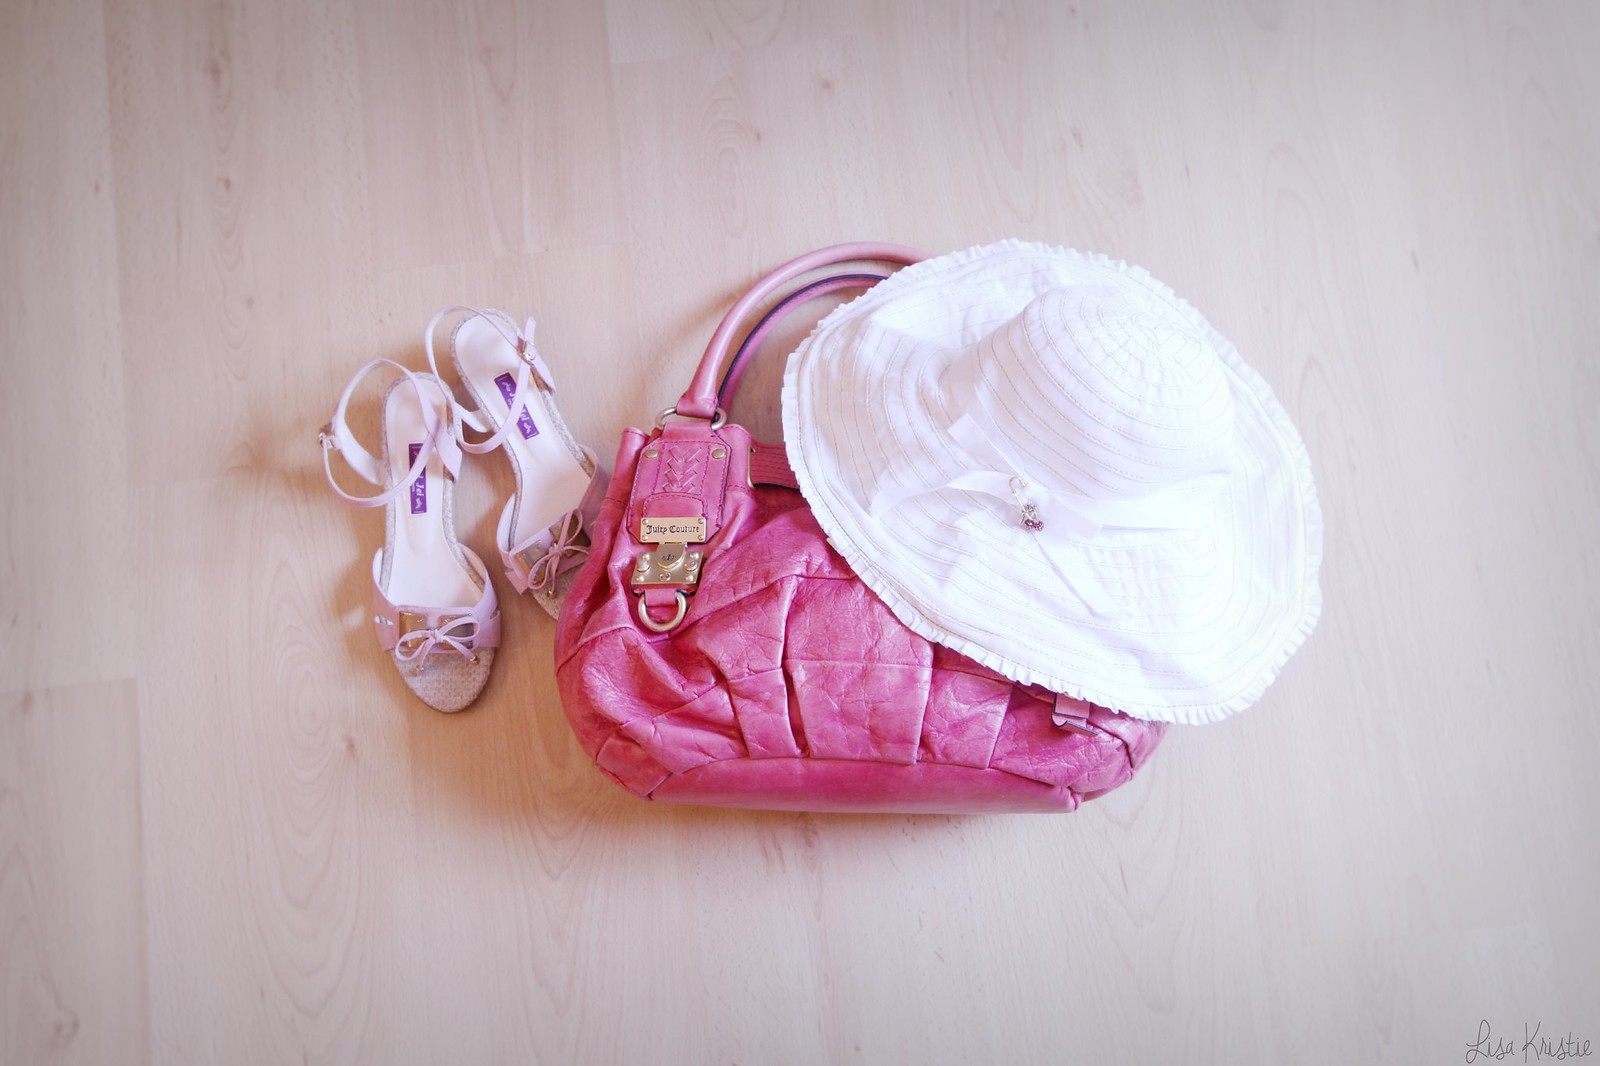 pink leather purse handbag bag juicy couture white summer floppy hat cotton bow cherry charm girly sandals shoes travel